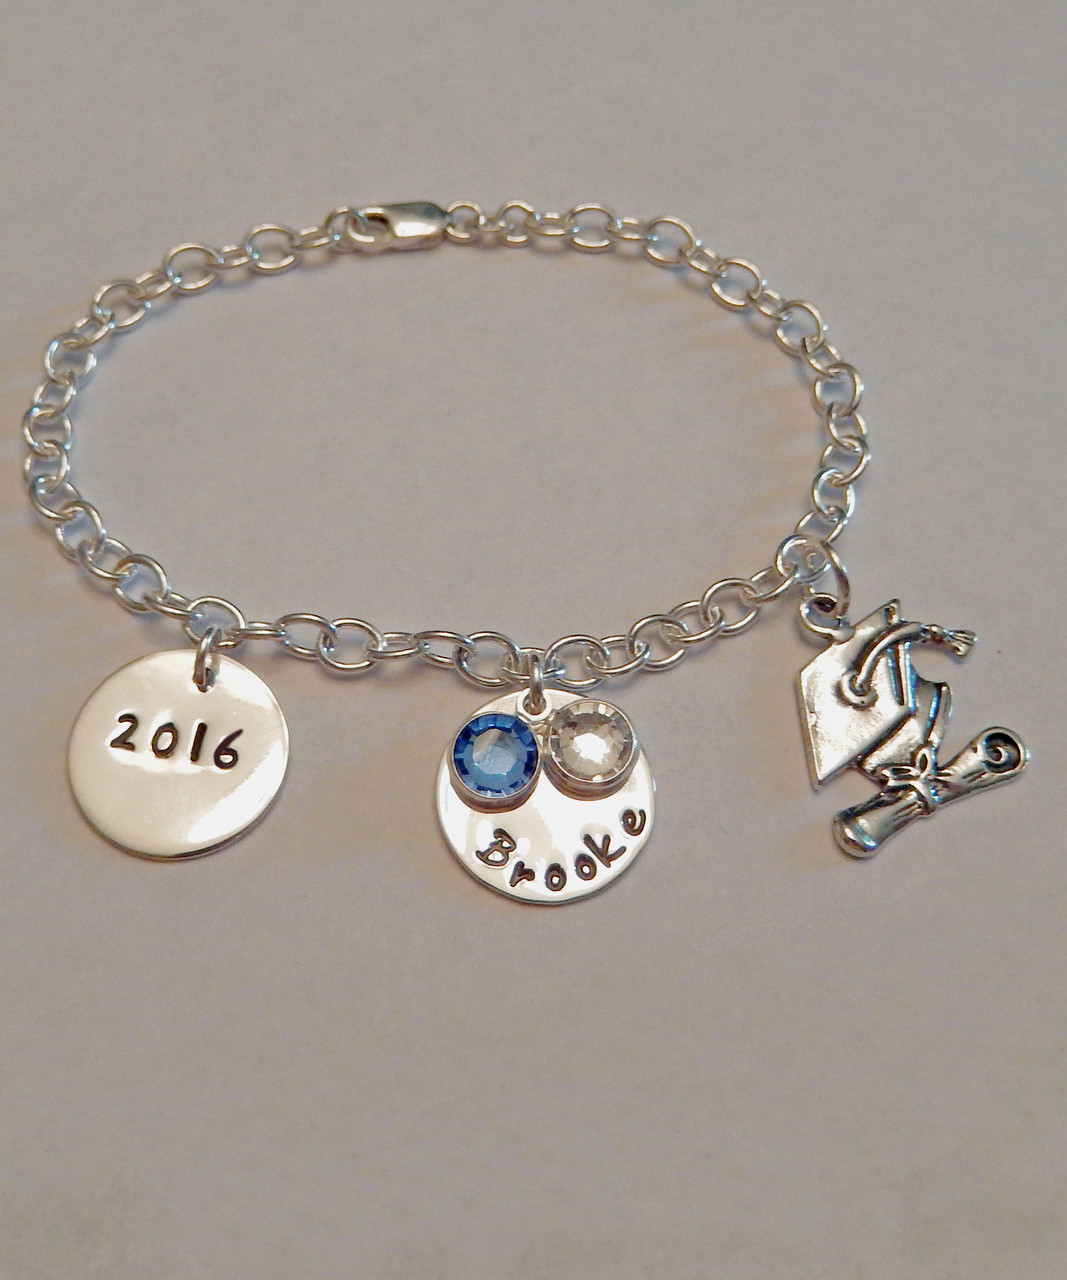 5e8a3c5cffaa3a Personalized 2015 Graduation Bracelet ~ Sterling Heart Songs Jewelry